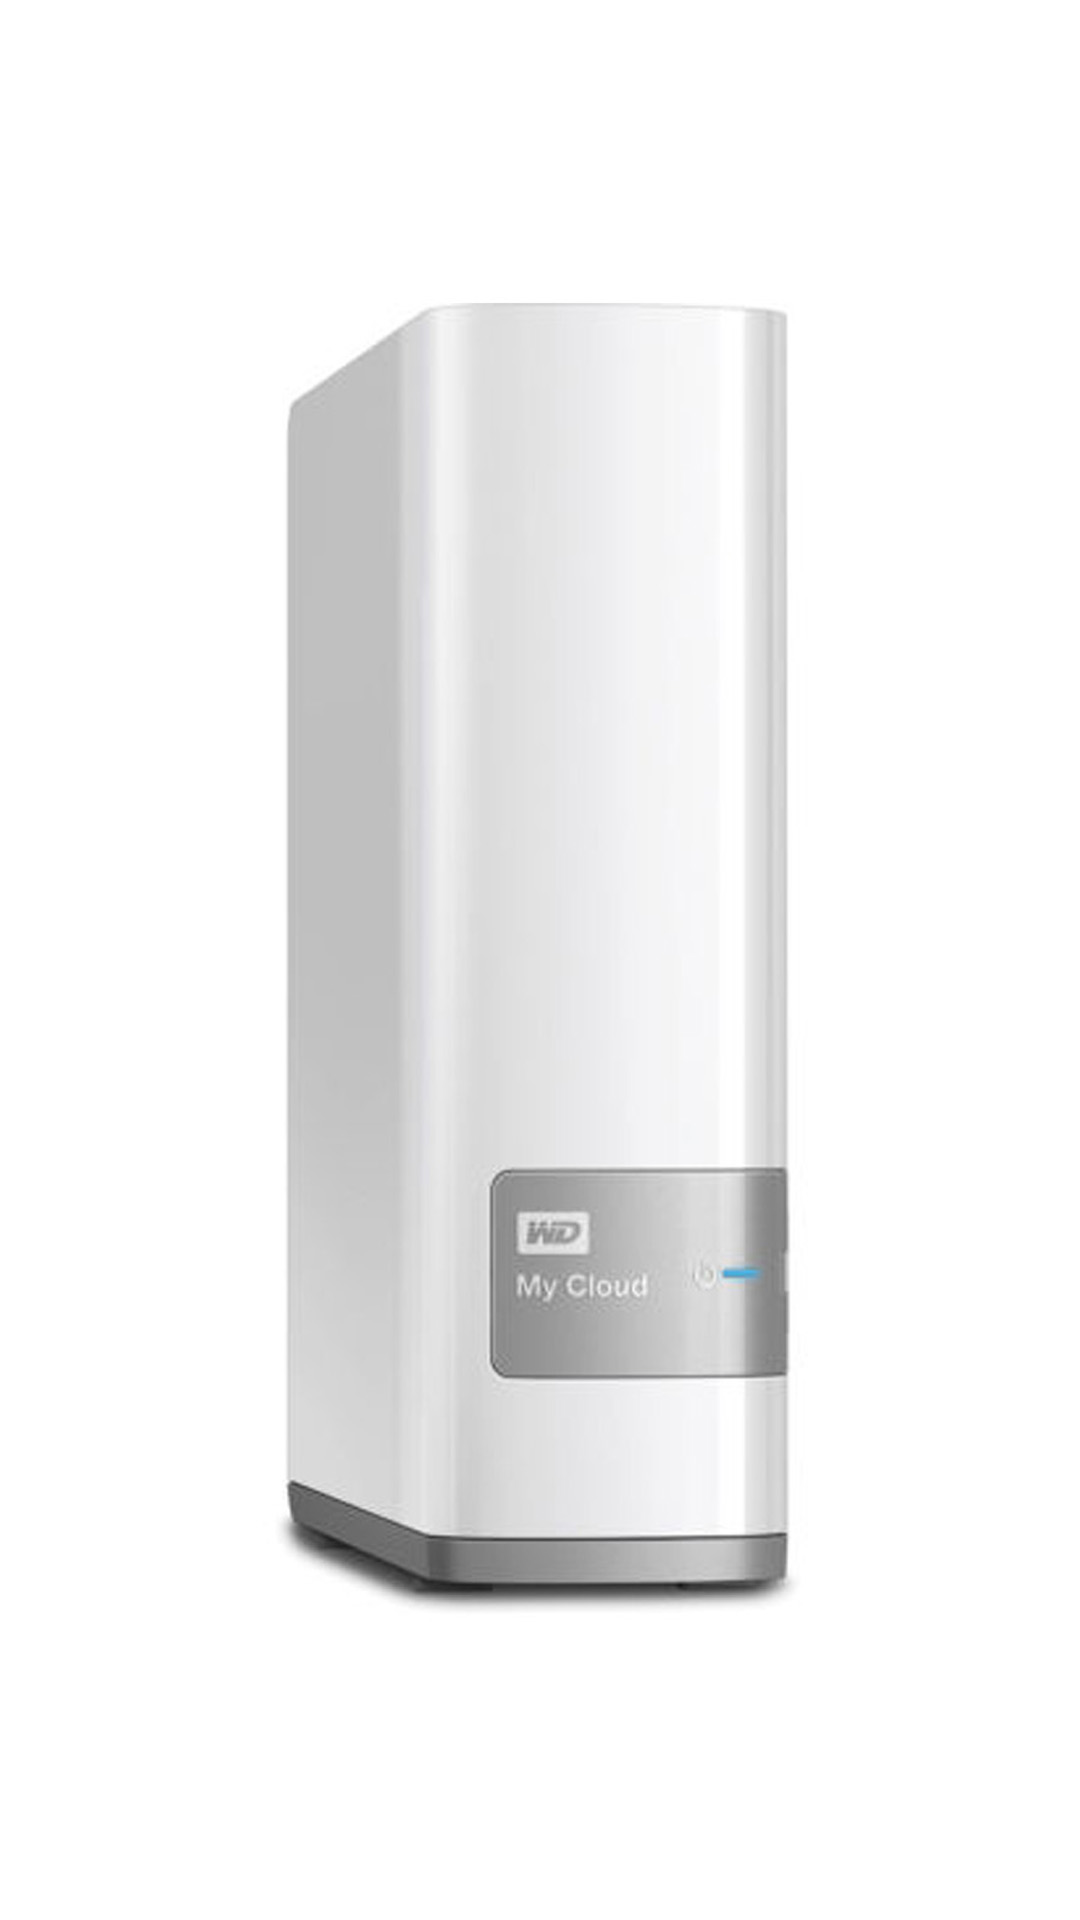 WD My Cloud 6 TB Network External Hard Drive (WDBCTL0060HWT) (White)